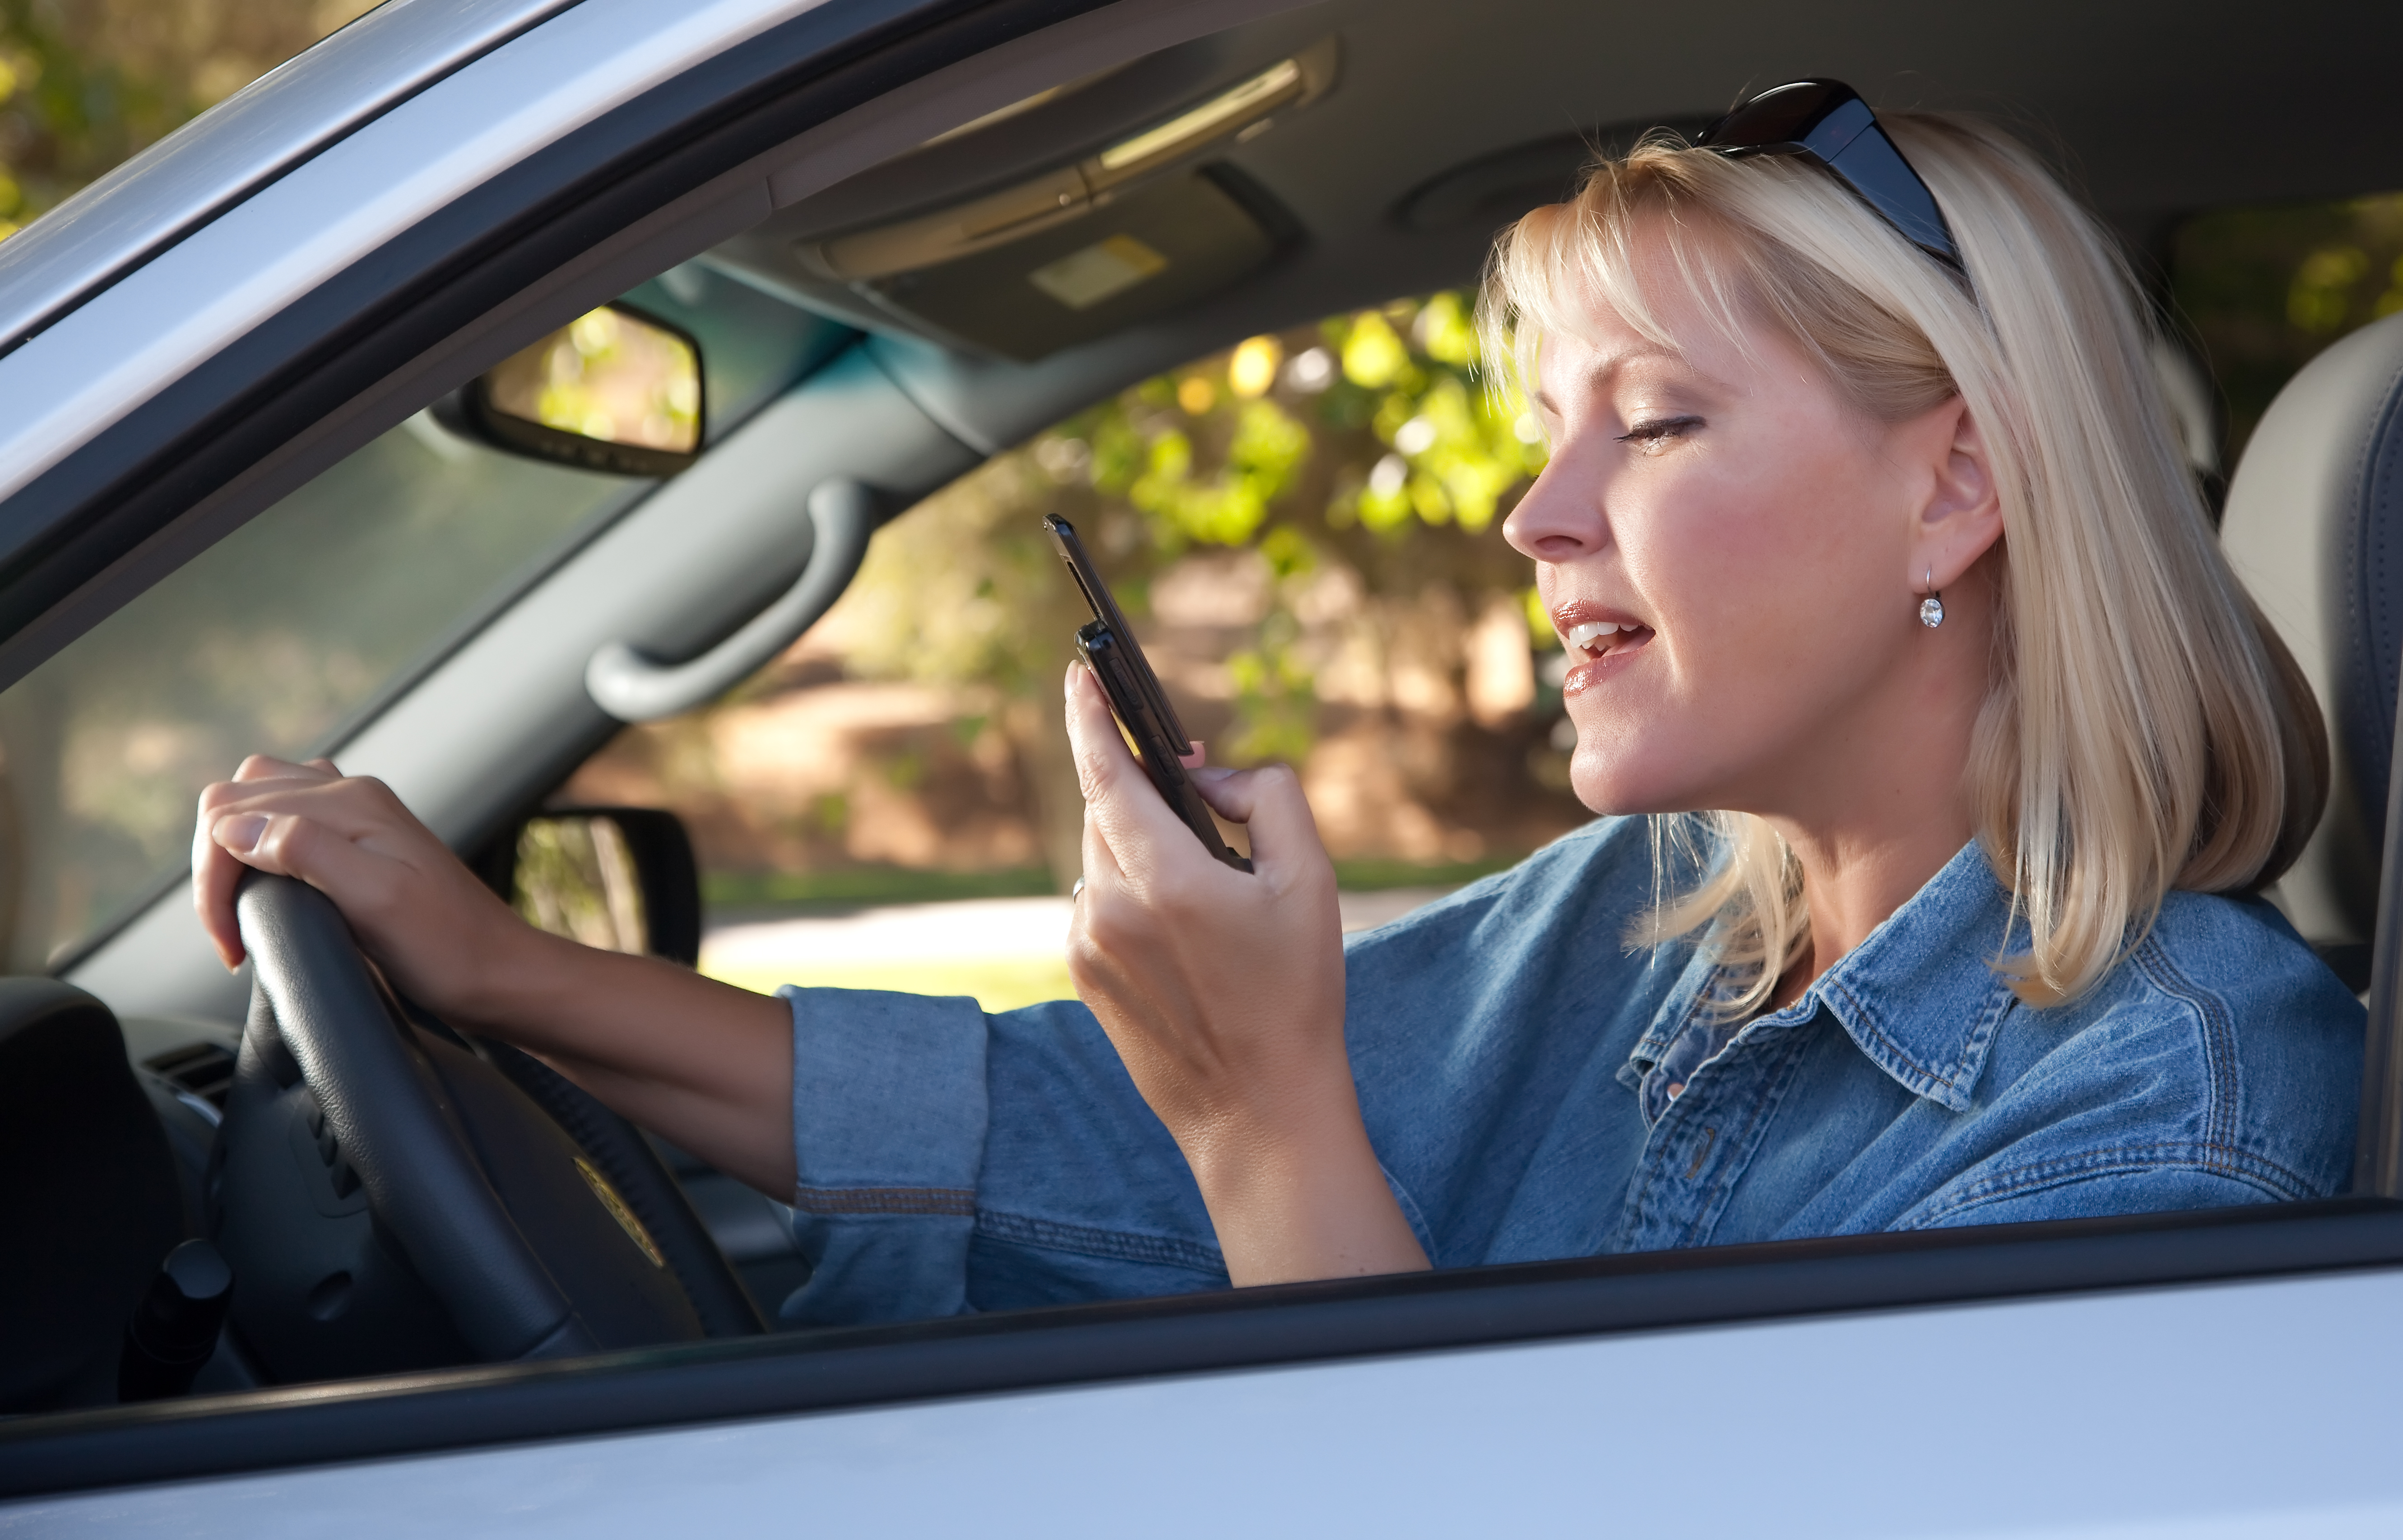 Woman Text Messaging While Driving